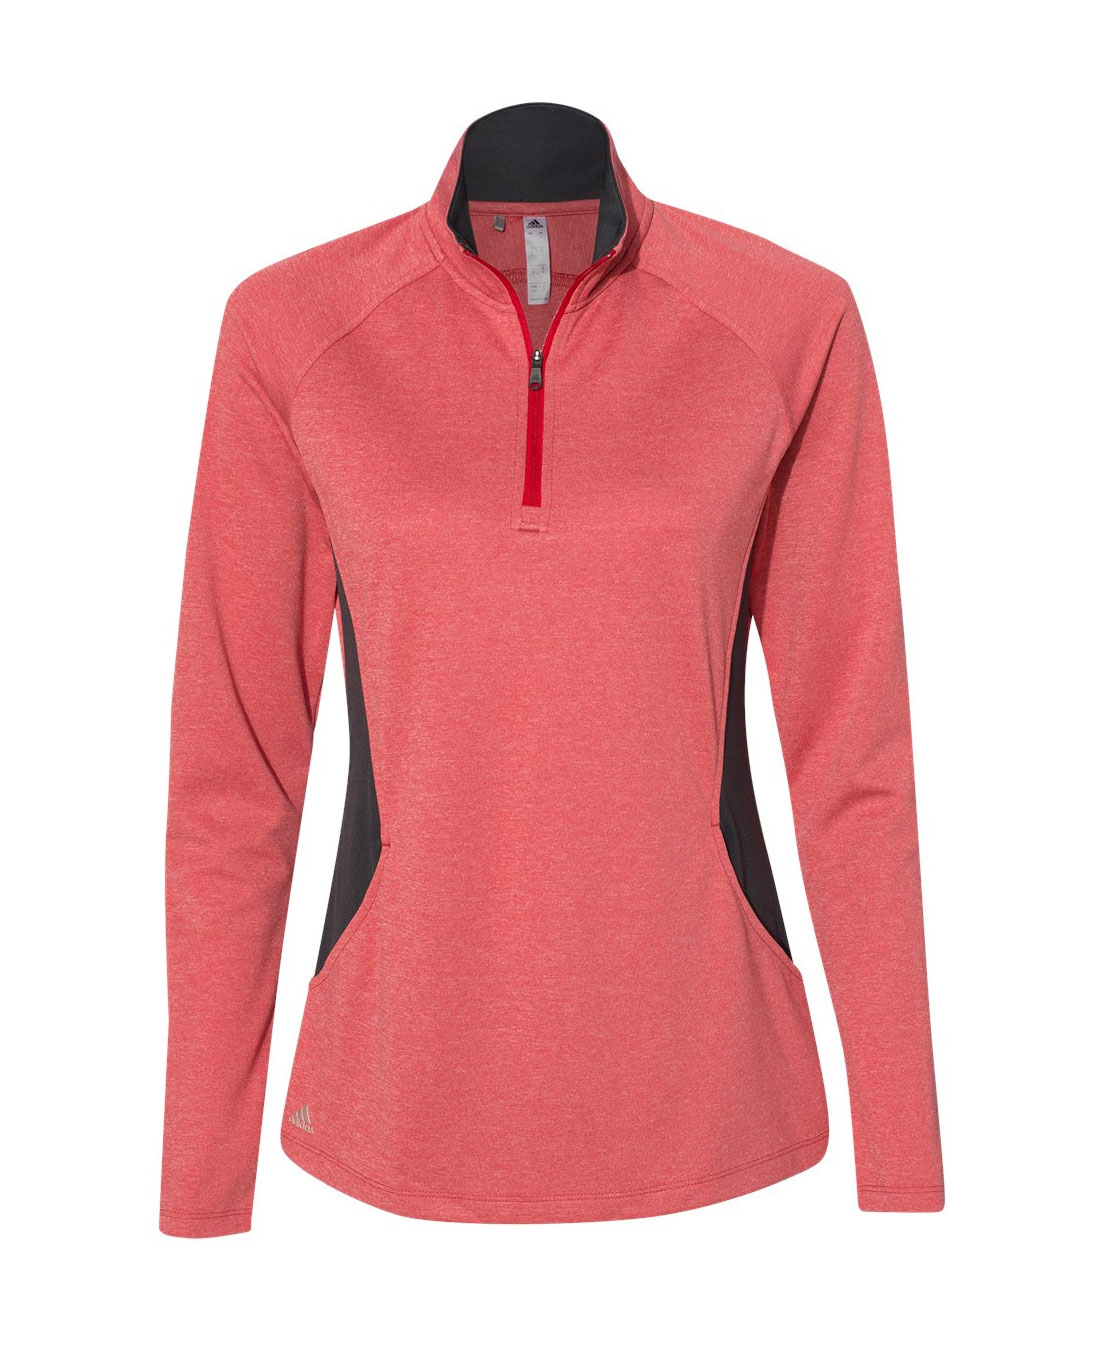 Adidas Womens Lightweight Quarter-Zip Pullover